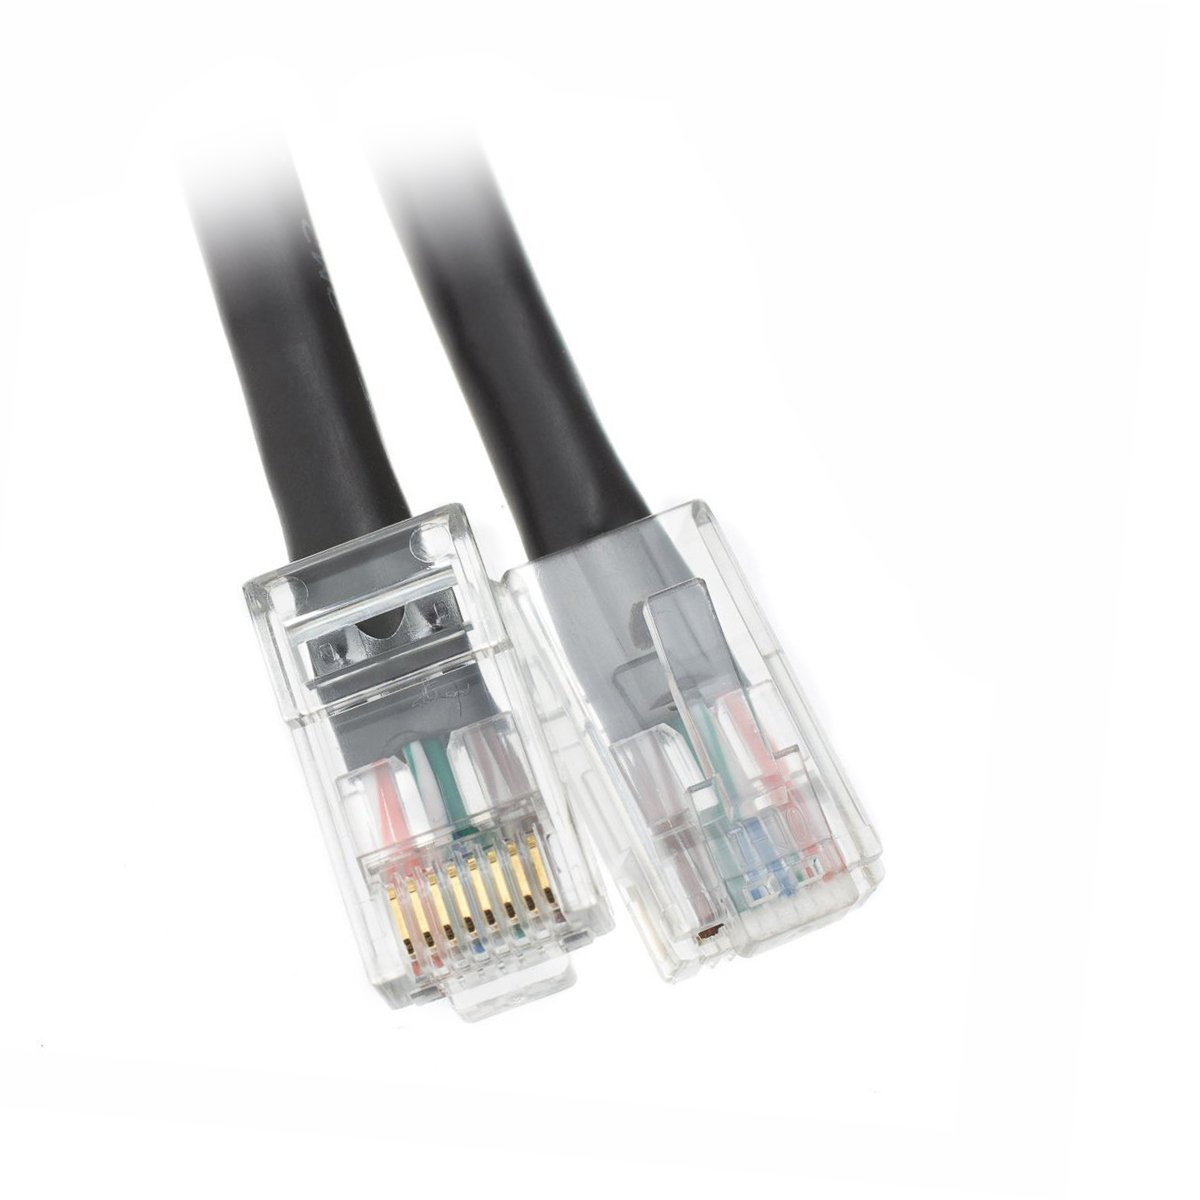 Acl 5 Feet Cat5e Rj45 Bootless Ethernet Lan Cable Black Patch Foot Part Number 10x6 Computers Accessories